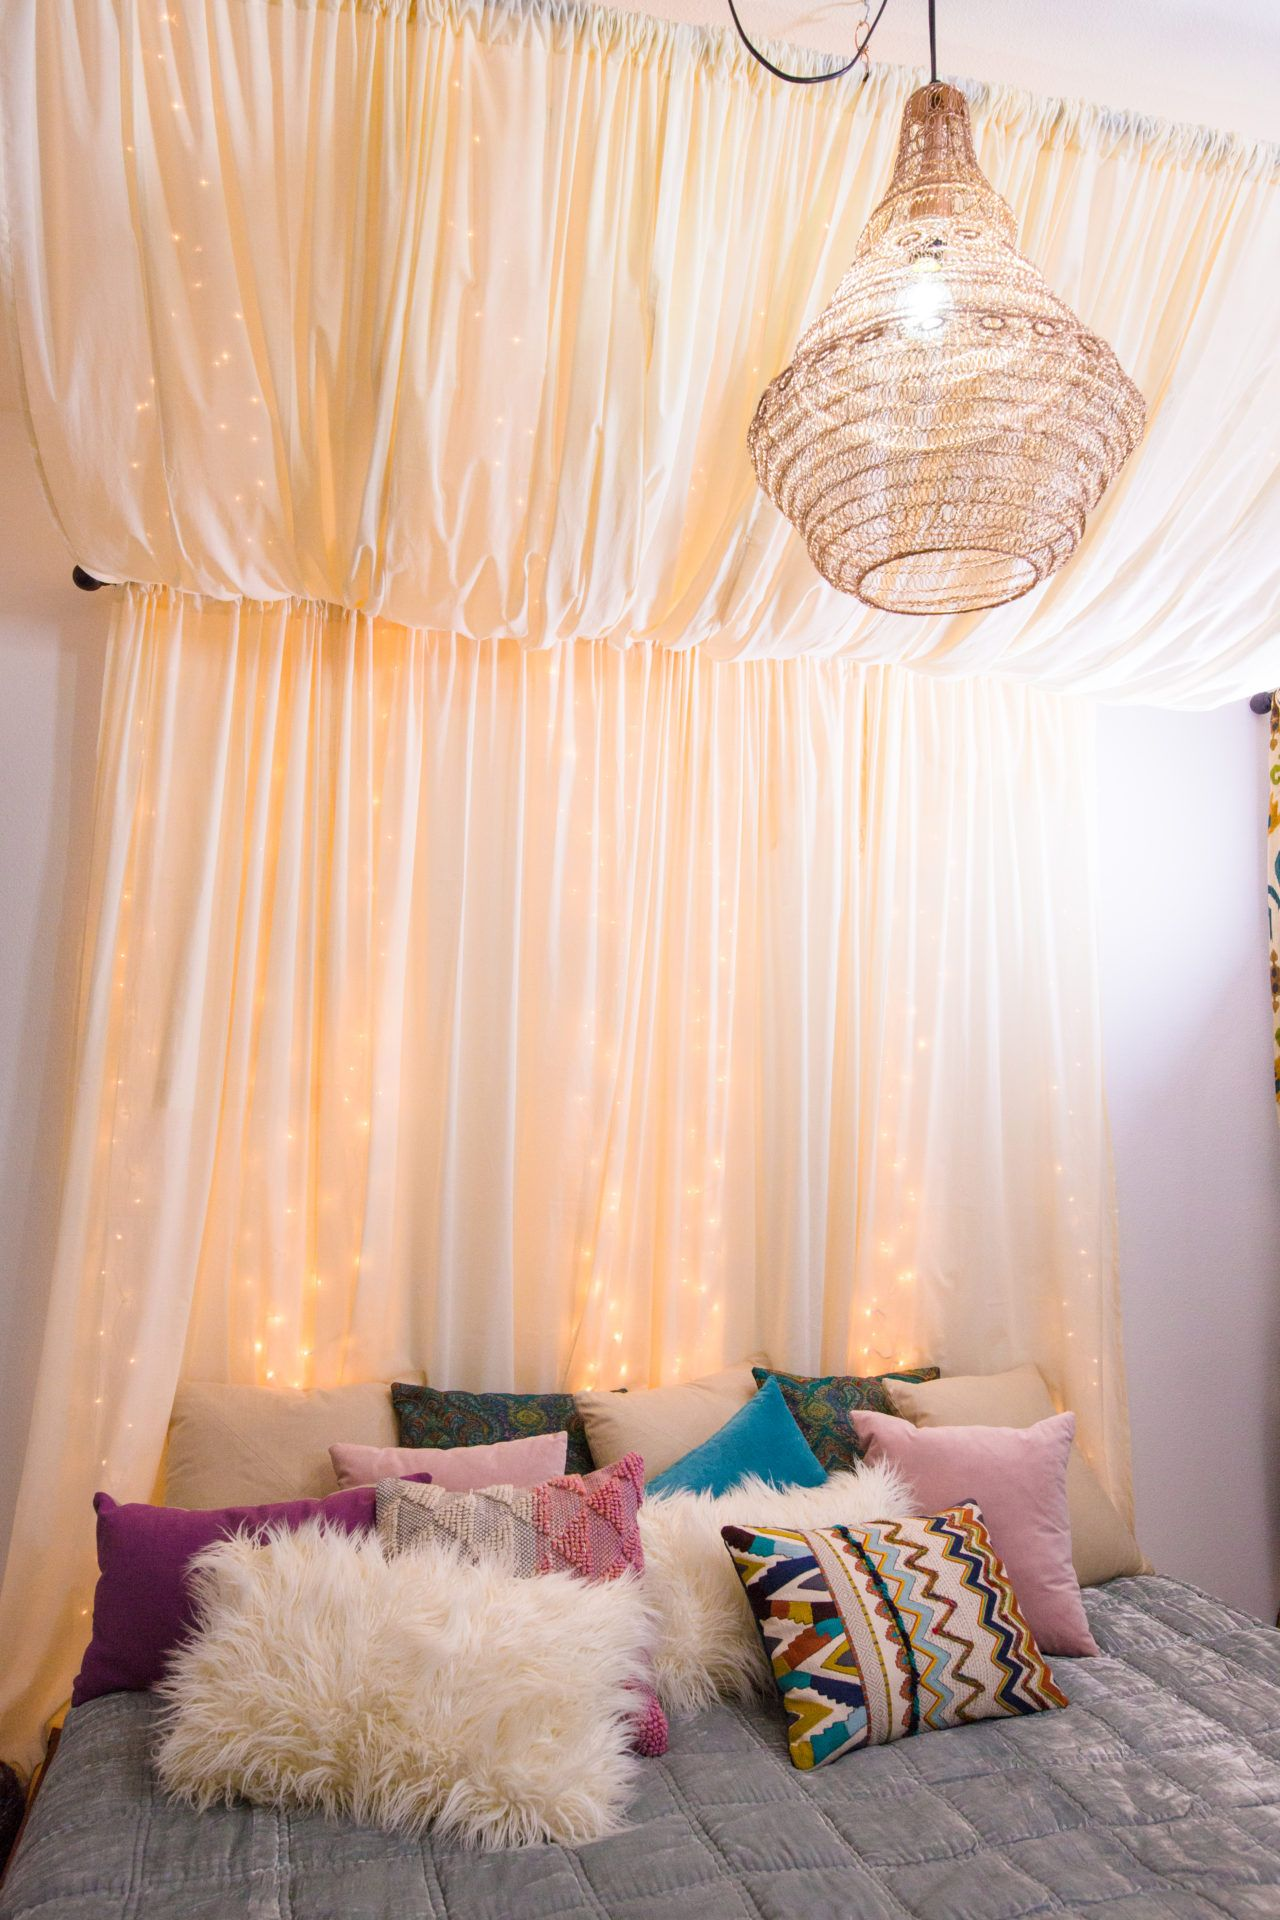 Fairy Lights Bedroom Goals Fairy Lights Bedroom Remodel Bedroom